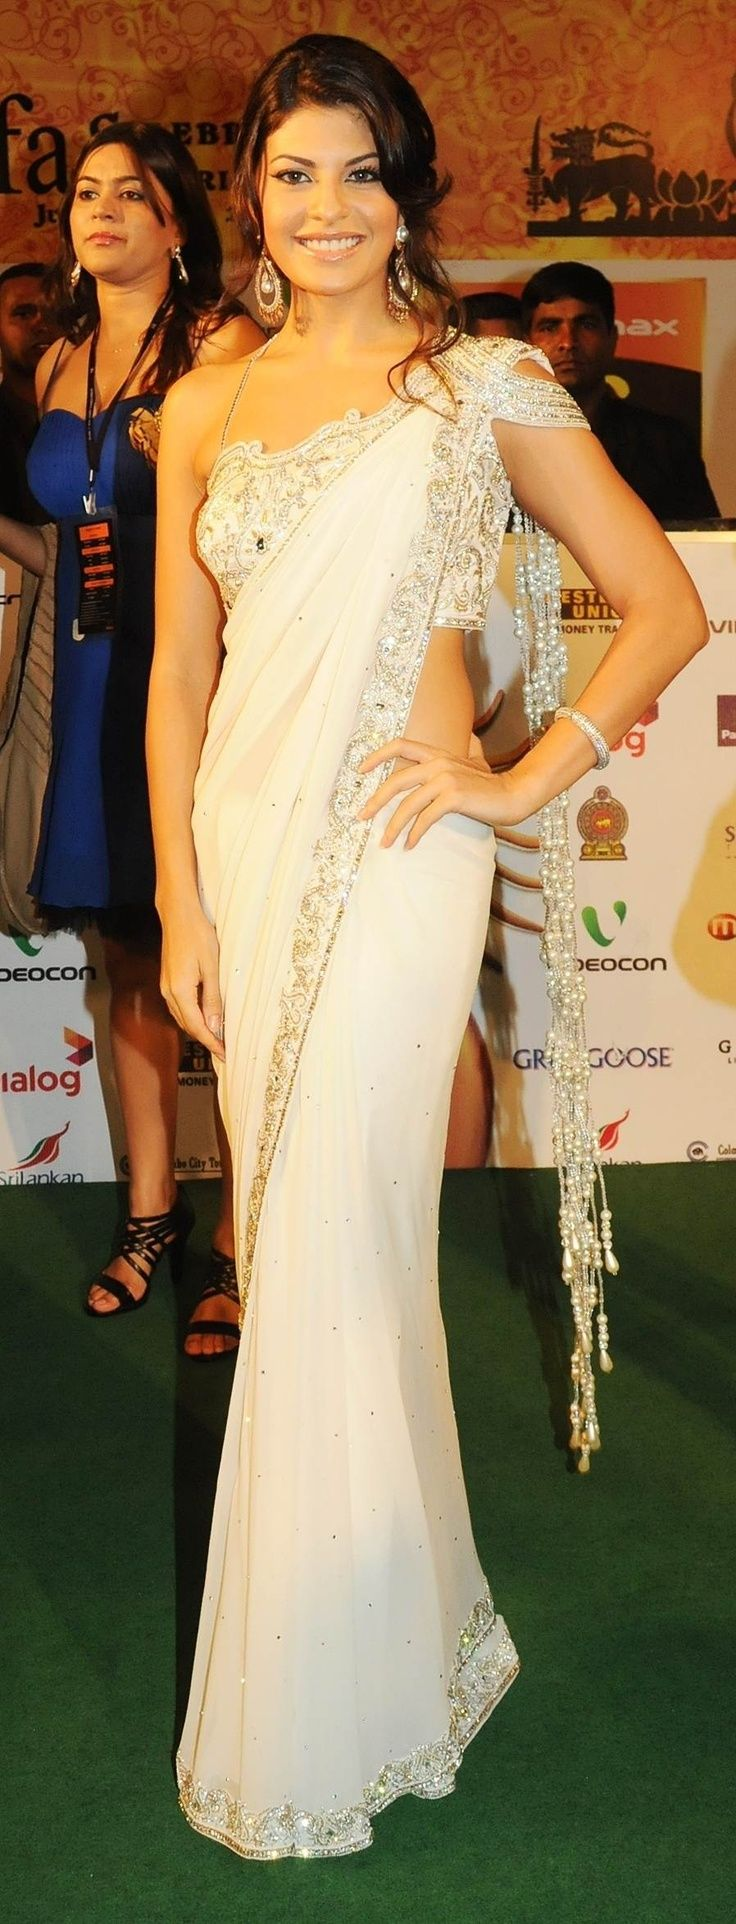 Love this saree. So beautiful and modern!